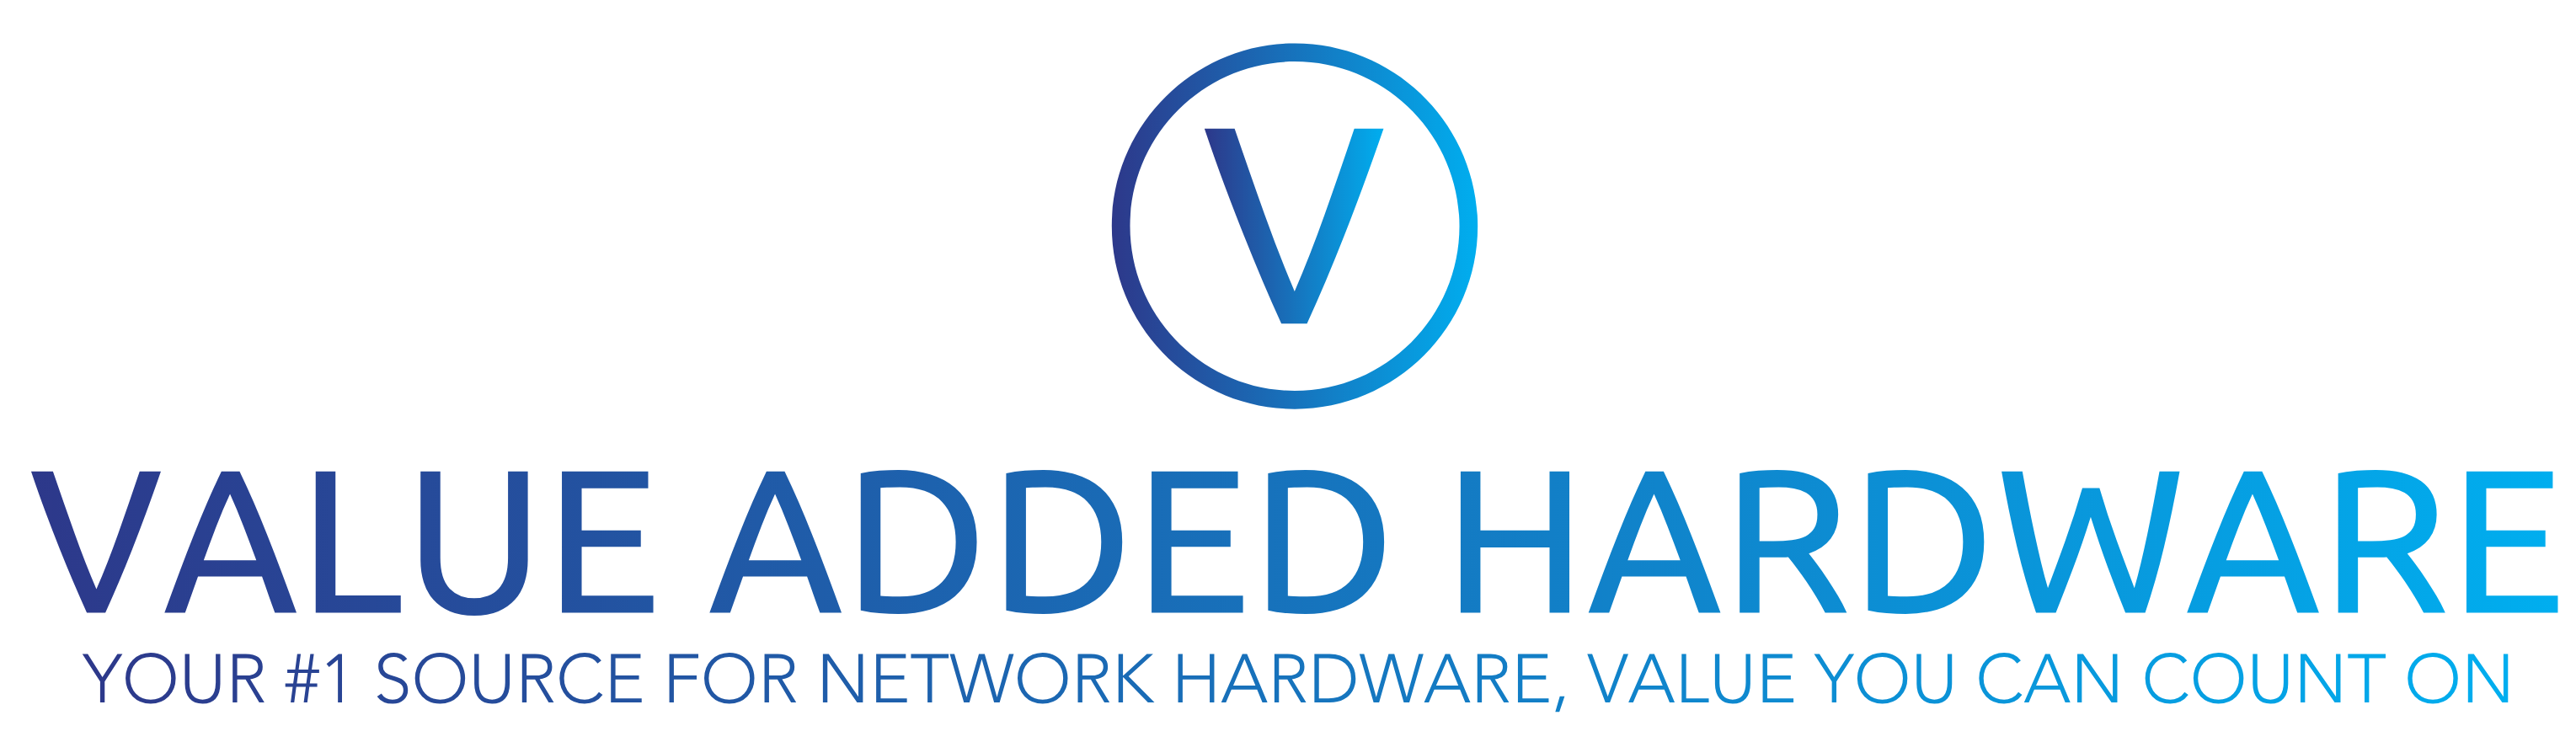 Valueaddedhardware.com